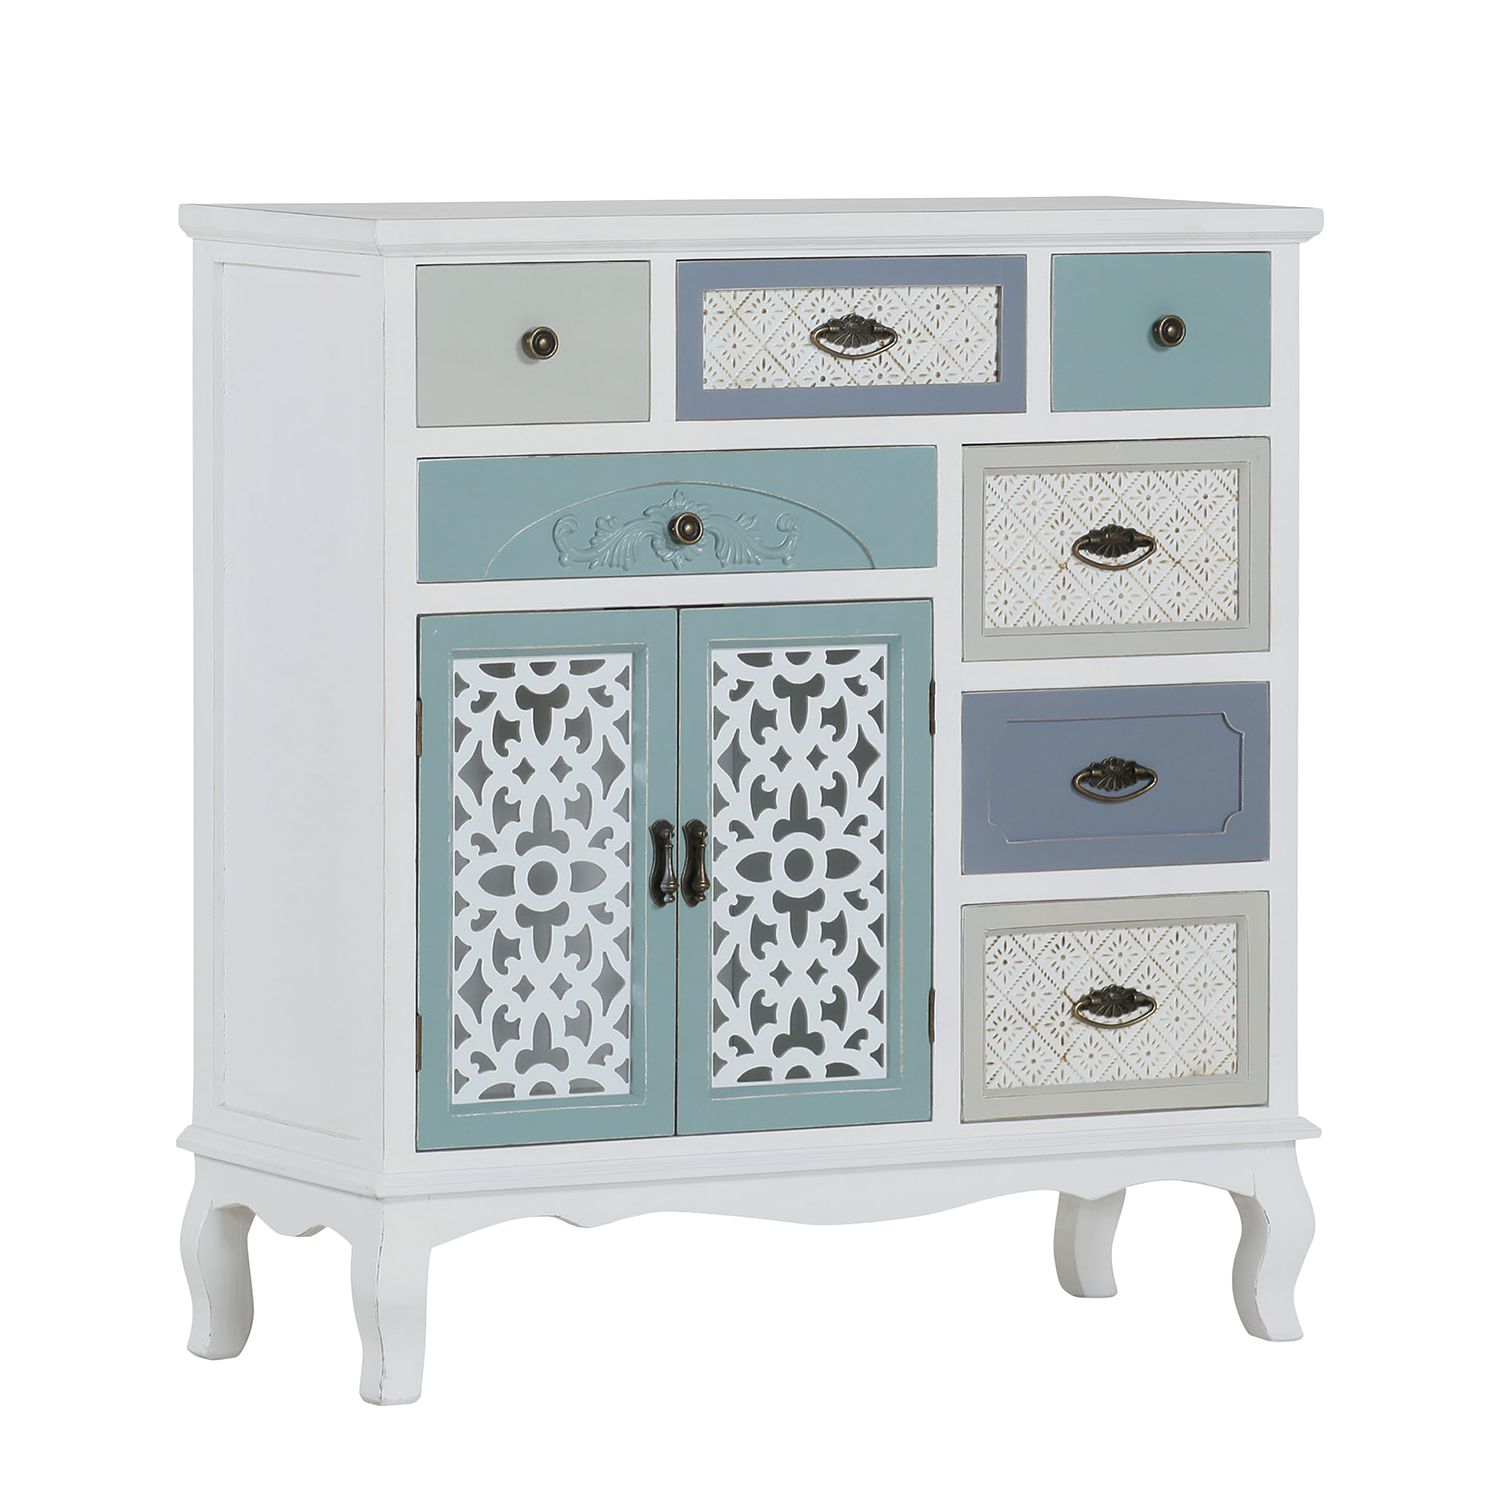 Home 24 - Commode charlo - sapin partiellement massif - blanc vintage, maison belfort